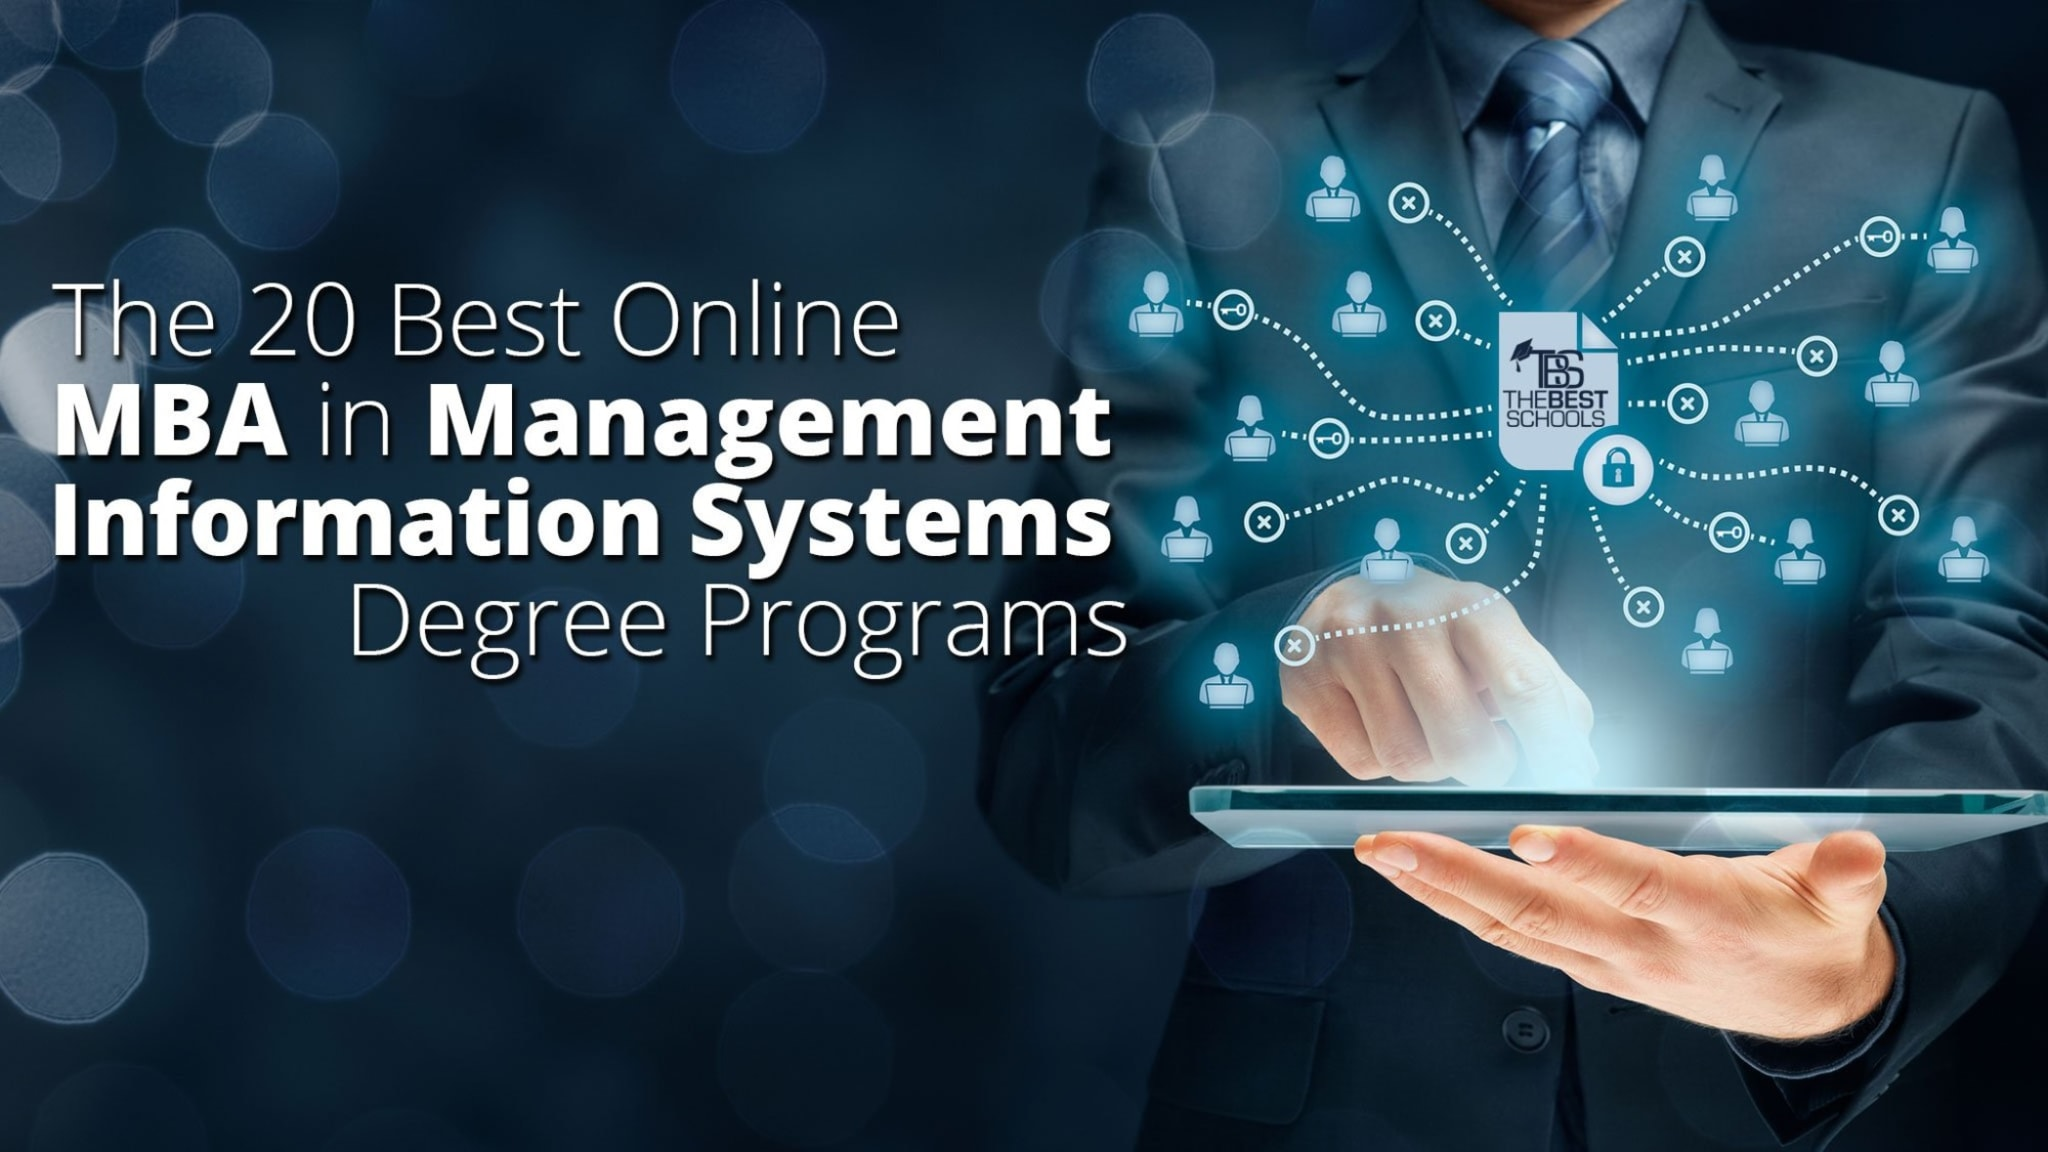 Technology Management Image: The 20 Best Online MBA In Management Information Systems